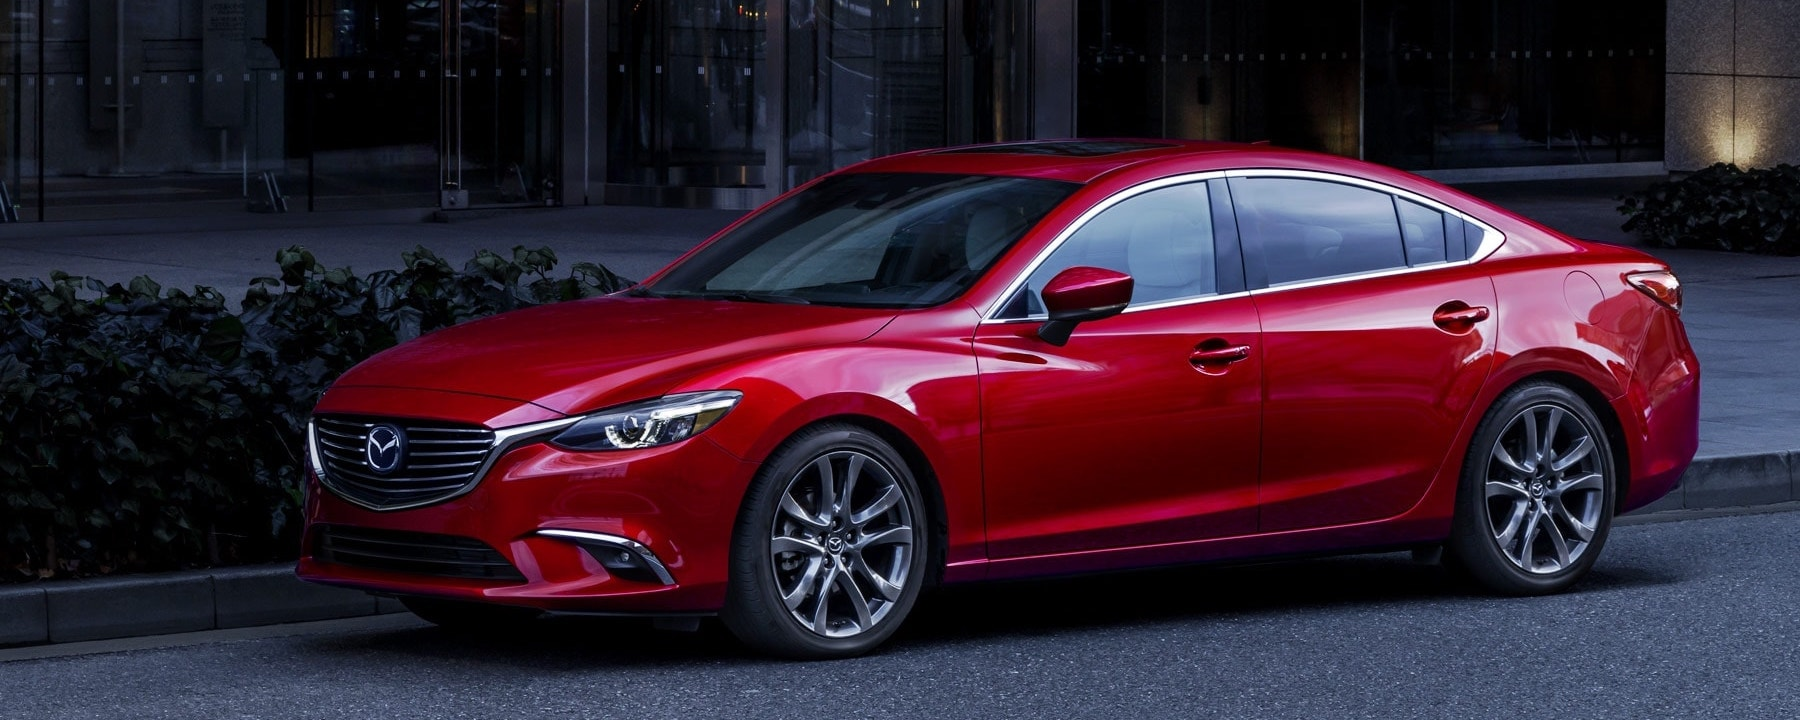 md hmdi in dealers fresh dealership brand look publish new s exterior mazda car brands showcases